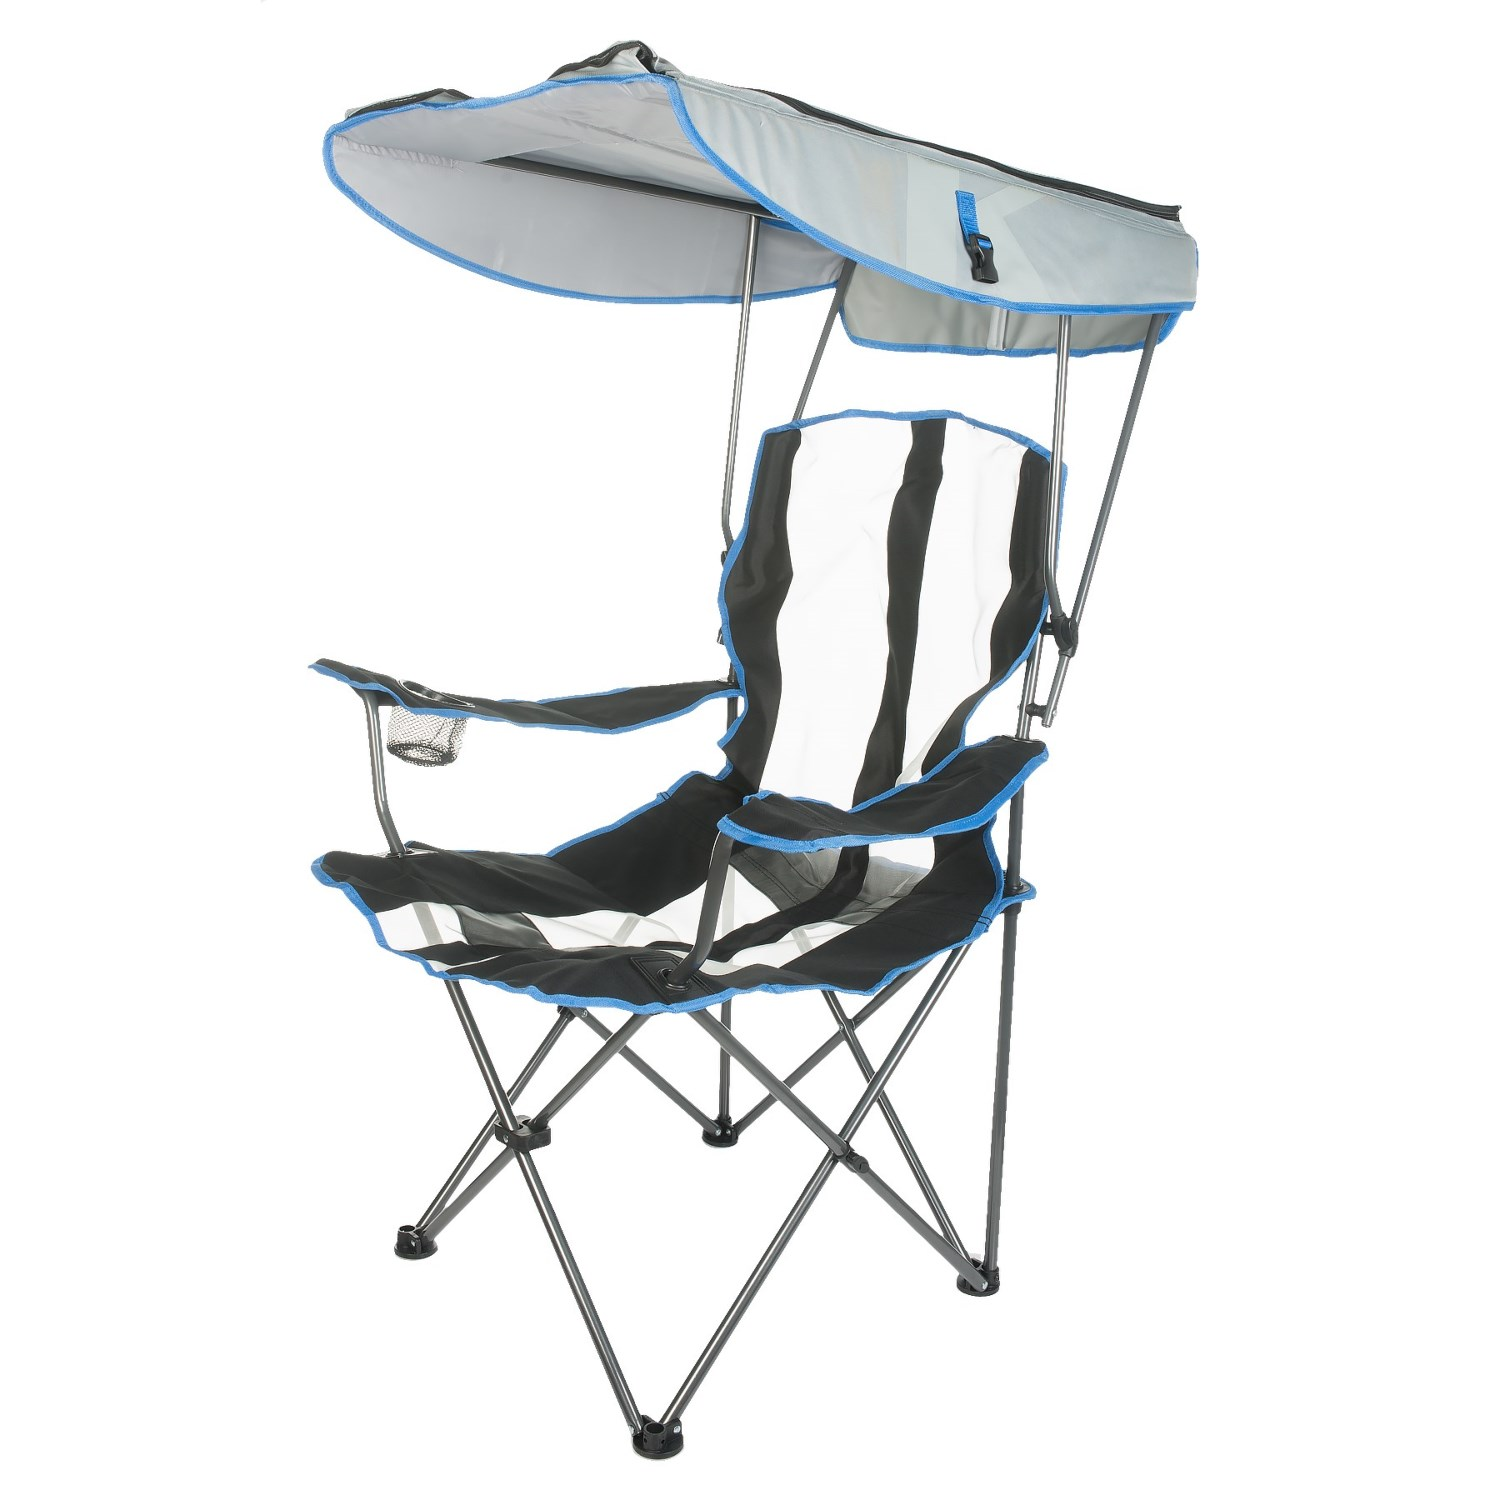 Kelsyus Original Canopy Chair with Weather Shield  sc 1 st  Sierra Trading Post & Kelsyus Original Canopy Chair with Weather Shield - Save 28%